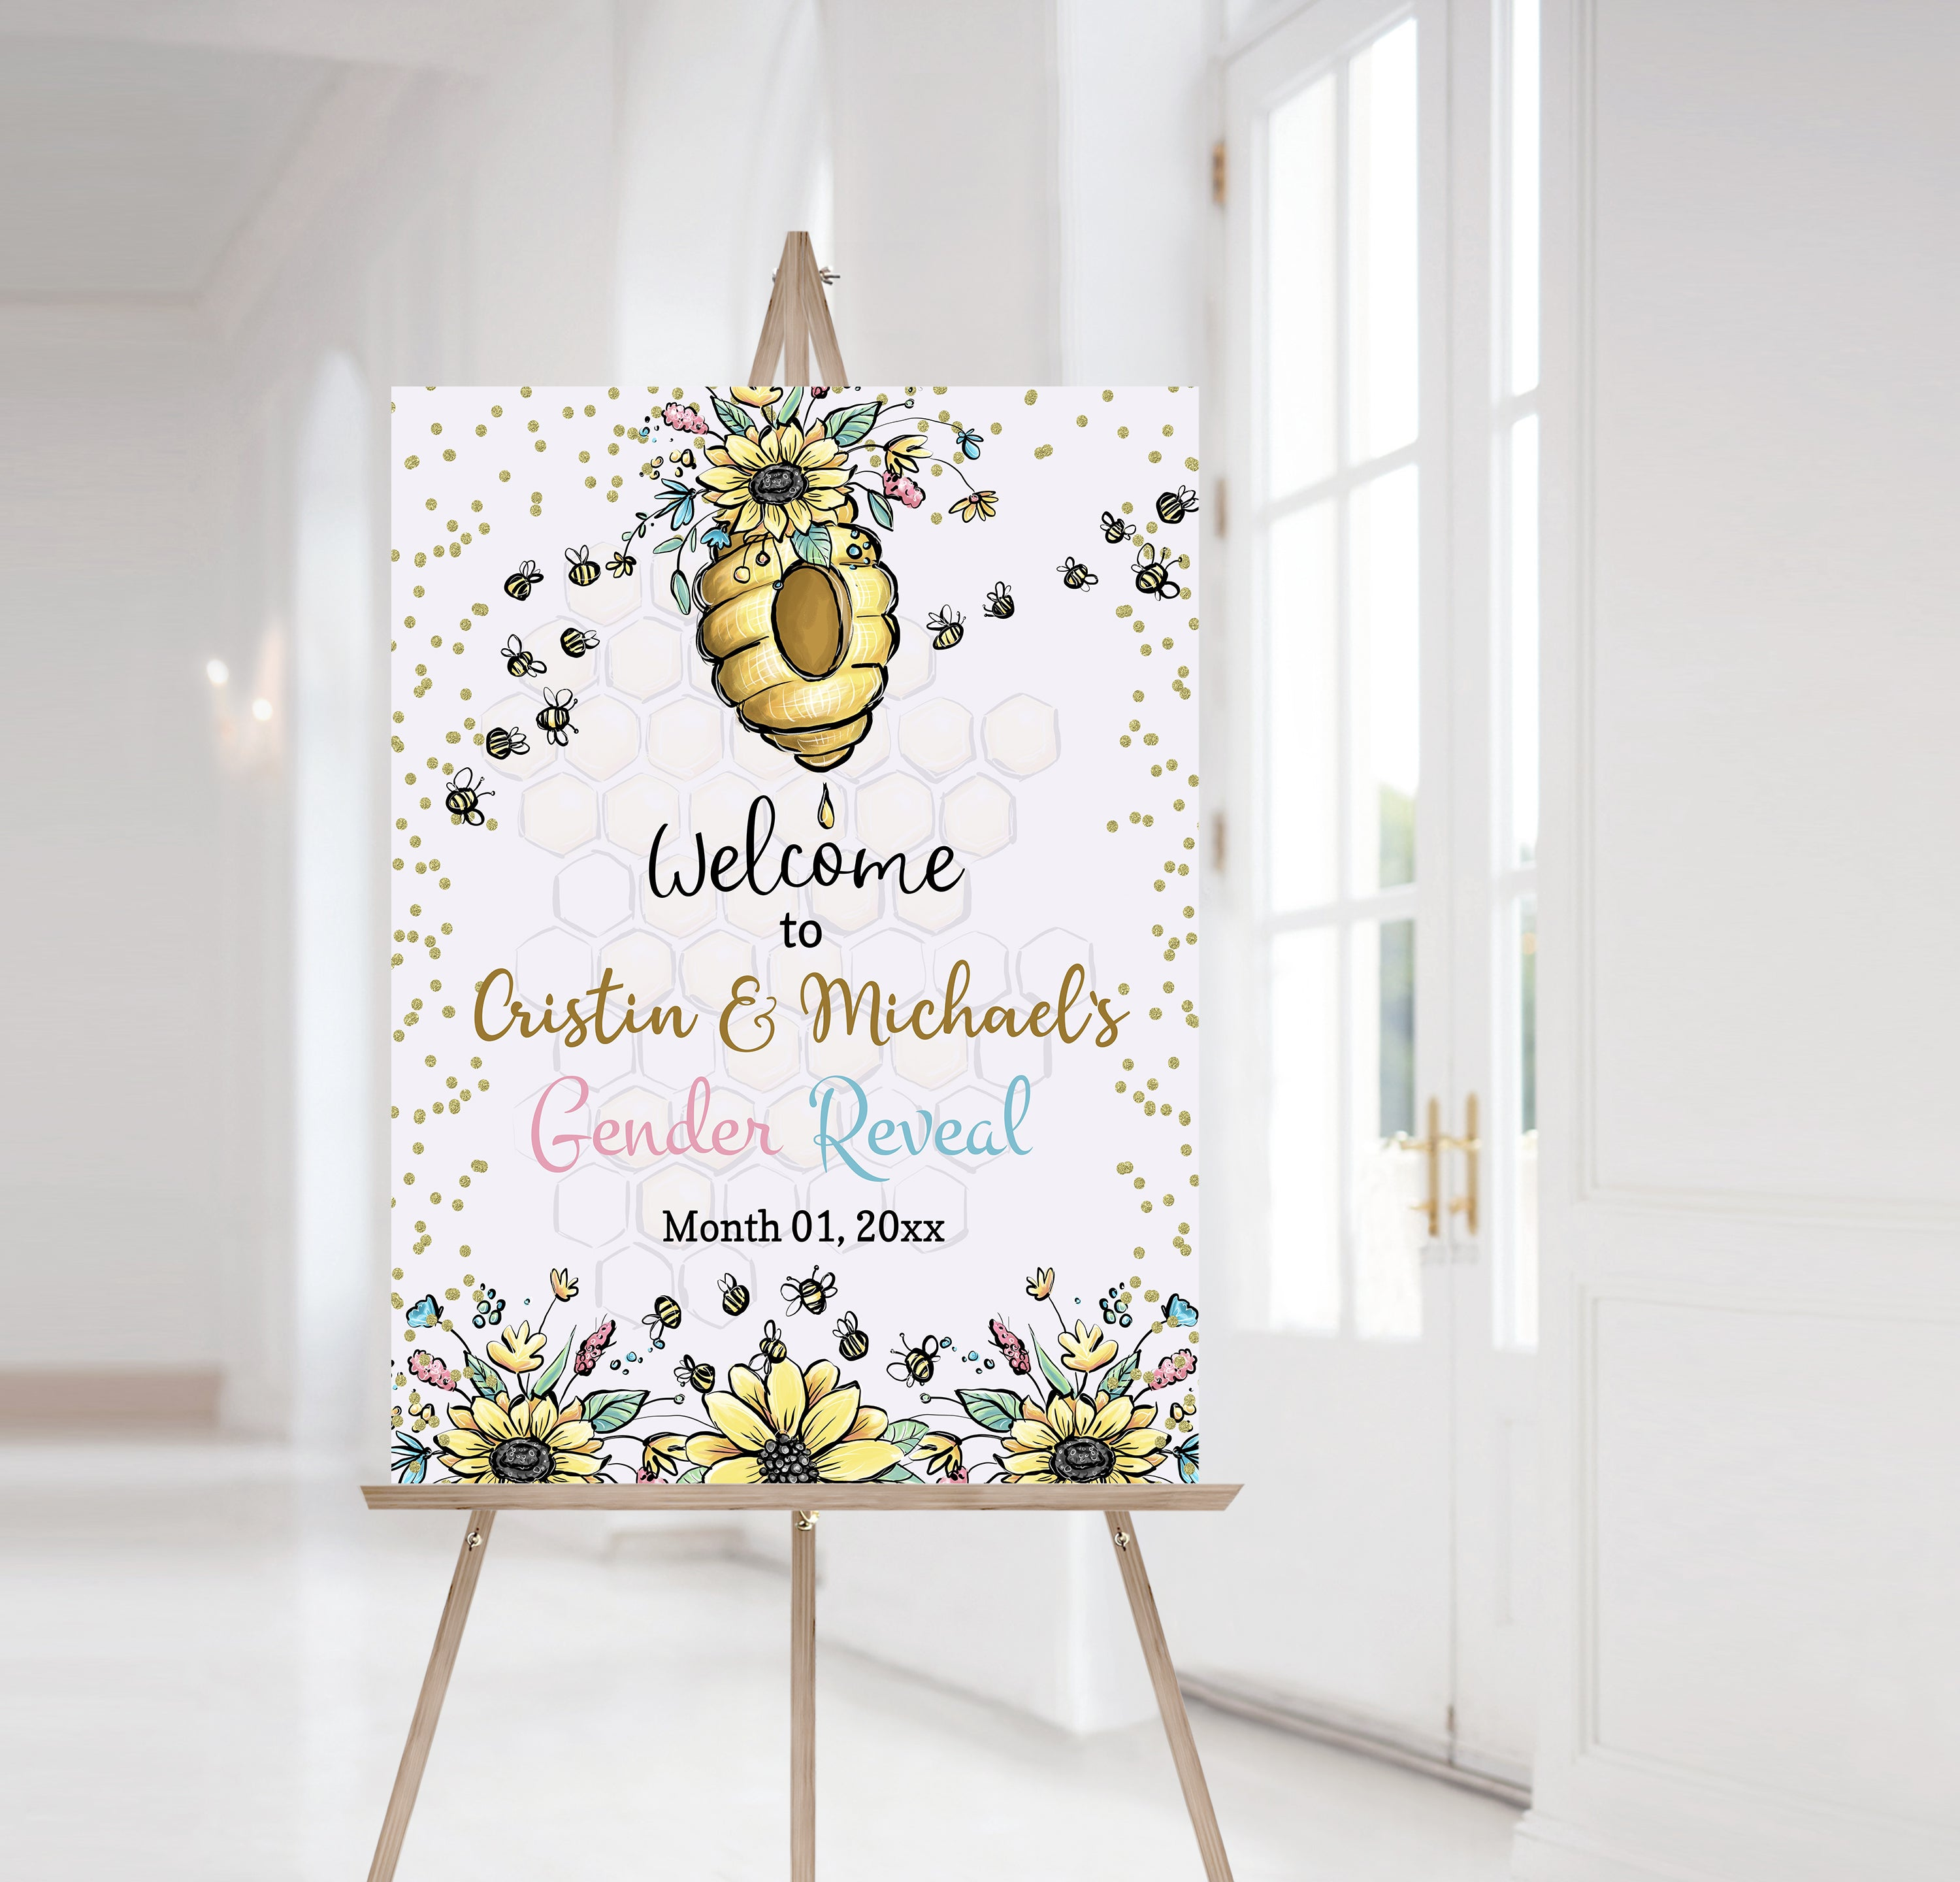 Editable Bee Baby Shower Welcome Sign | Honeycomb theme shower decorations - 61A